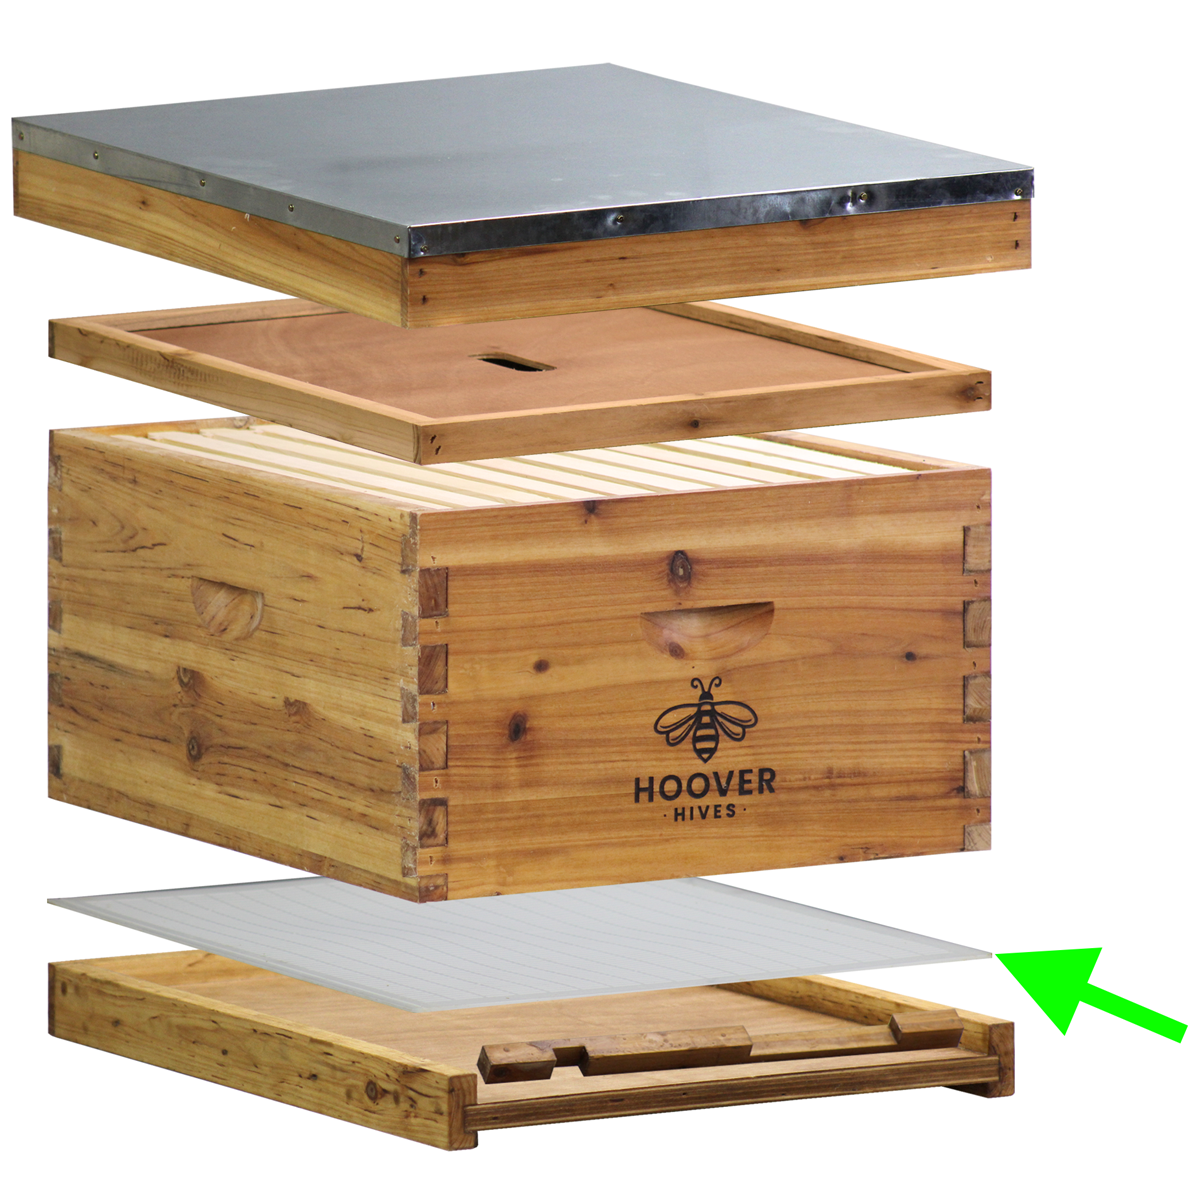 An Exploded View Of A Beehive Showing The Pieces Separated Apart. The Queen Excluder Is Placed Above The Solid Bottom Board